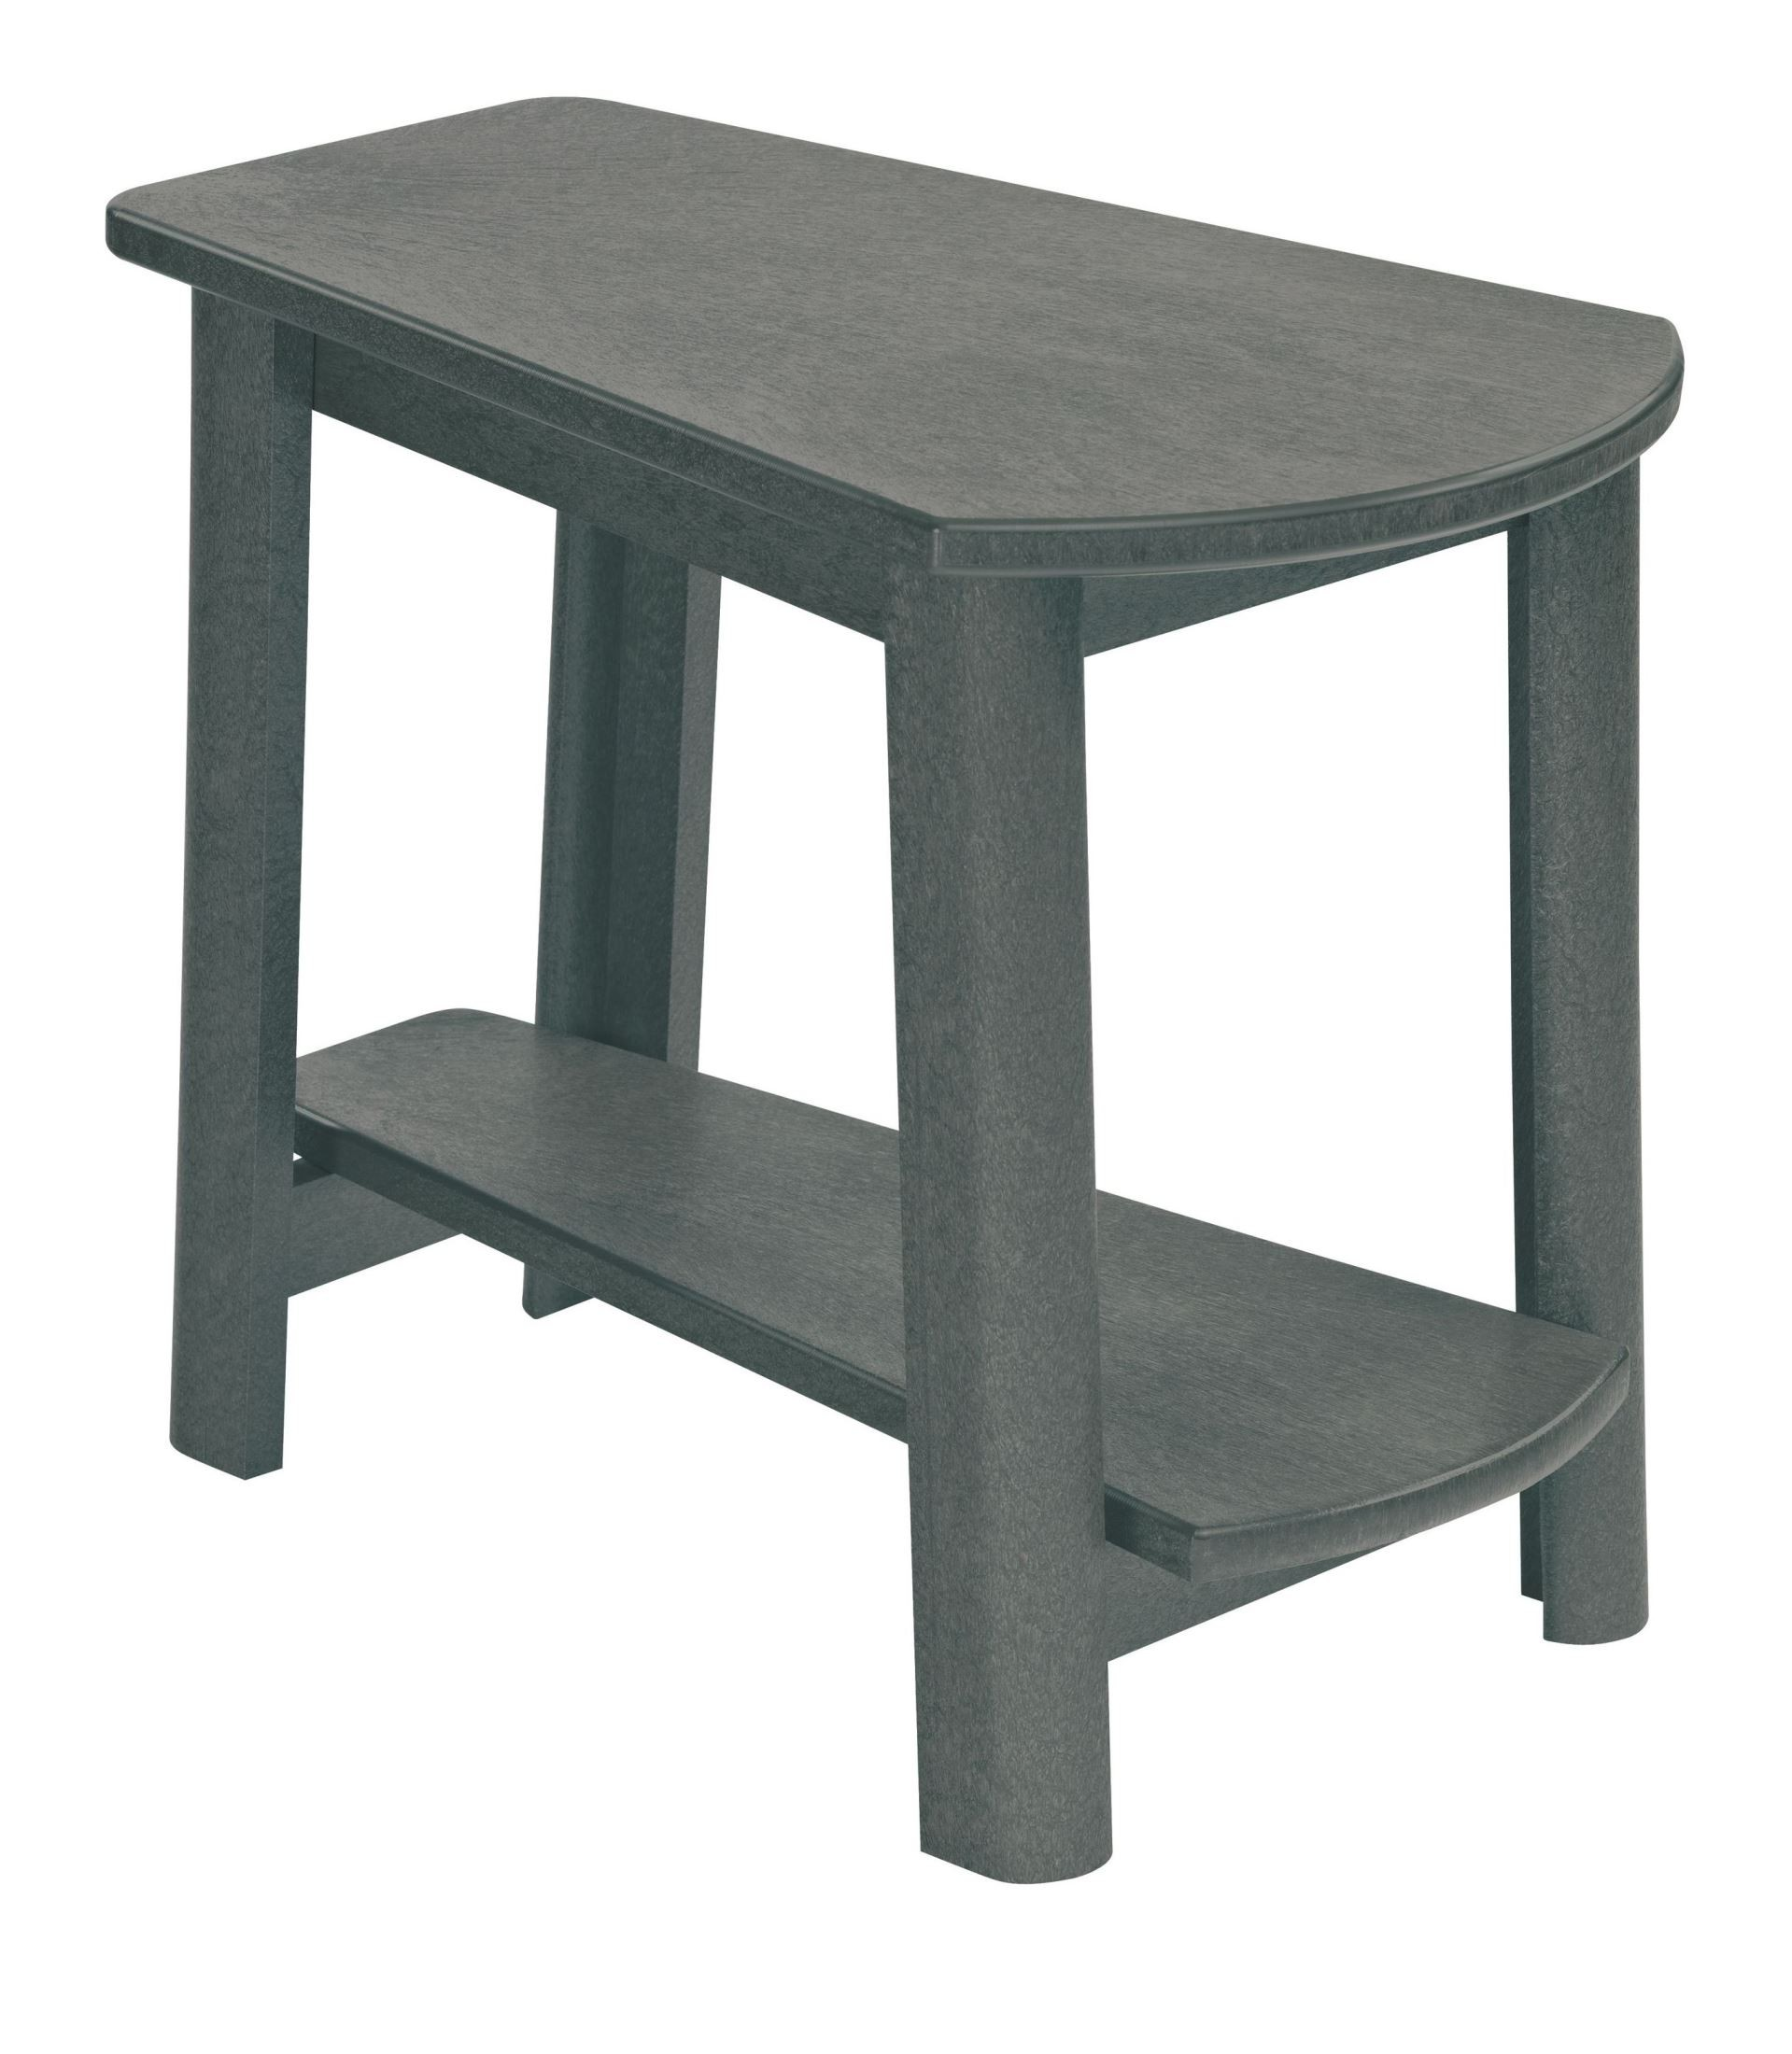 Generations slate tapered accent table from cr plastic